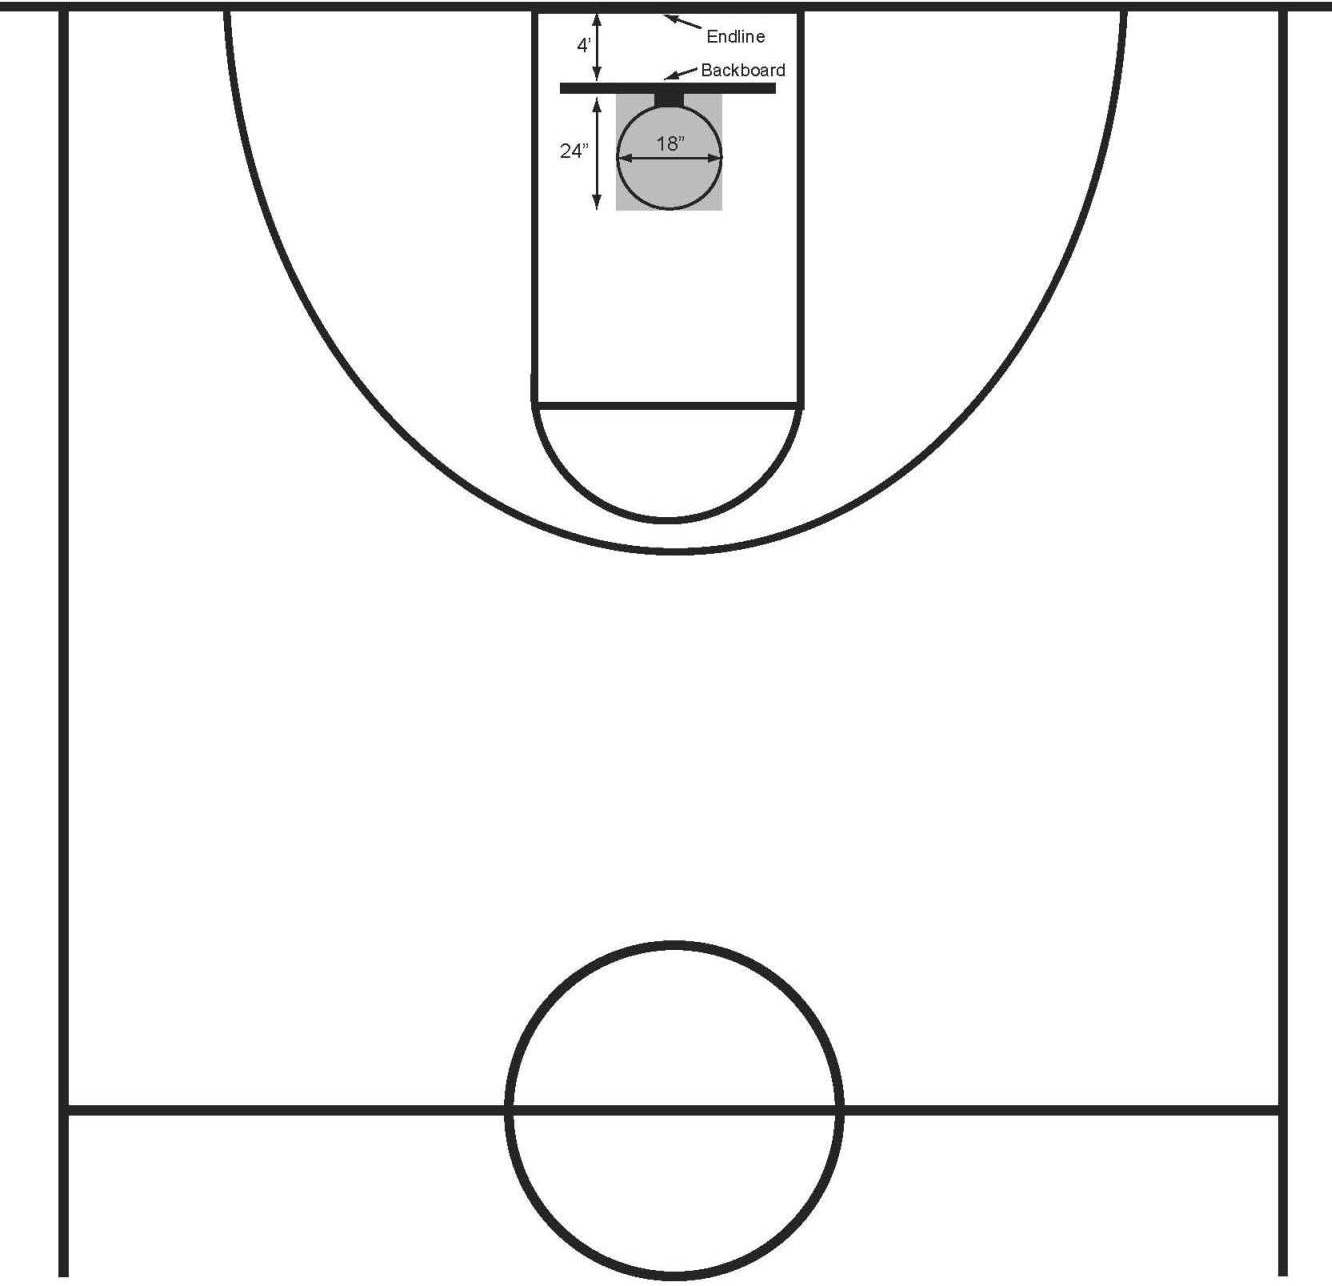 Half court shot black and white clipart clip art transparent library Free Basketball Court Clipart, Download Free Clip Art, Free Clip Art ... clip art transparent library